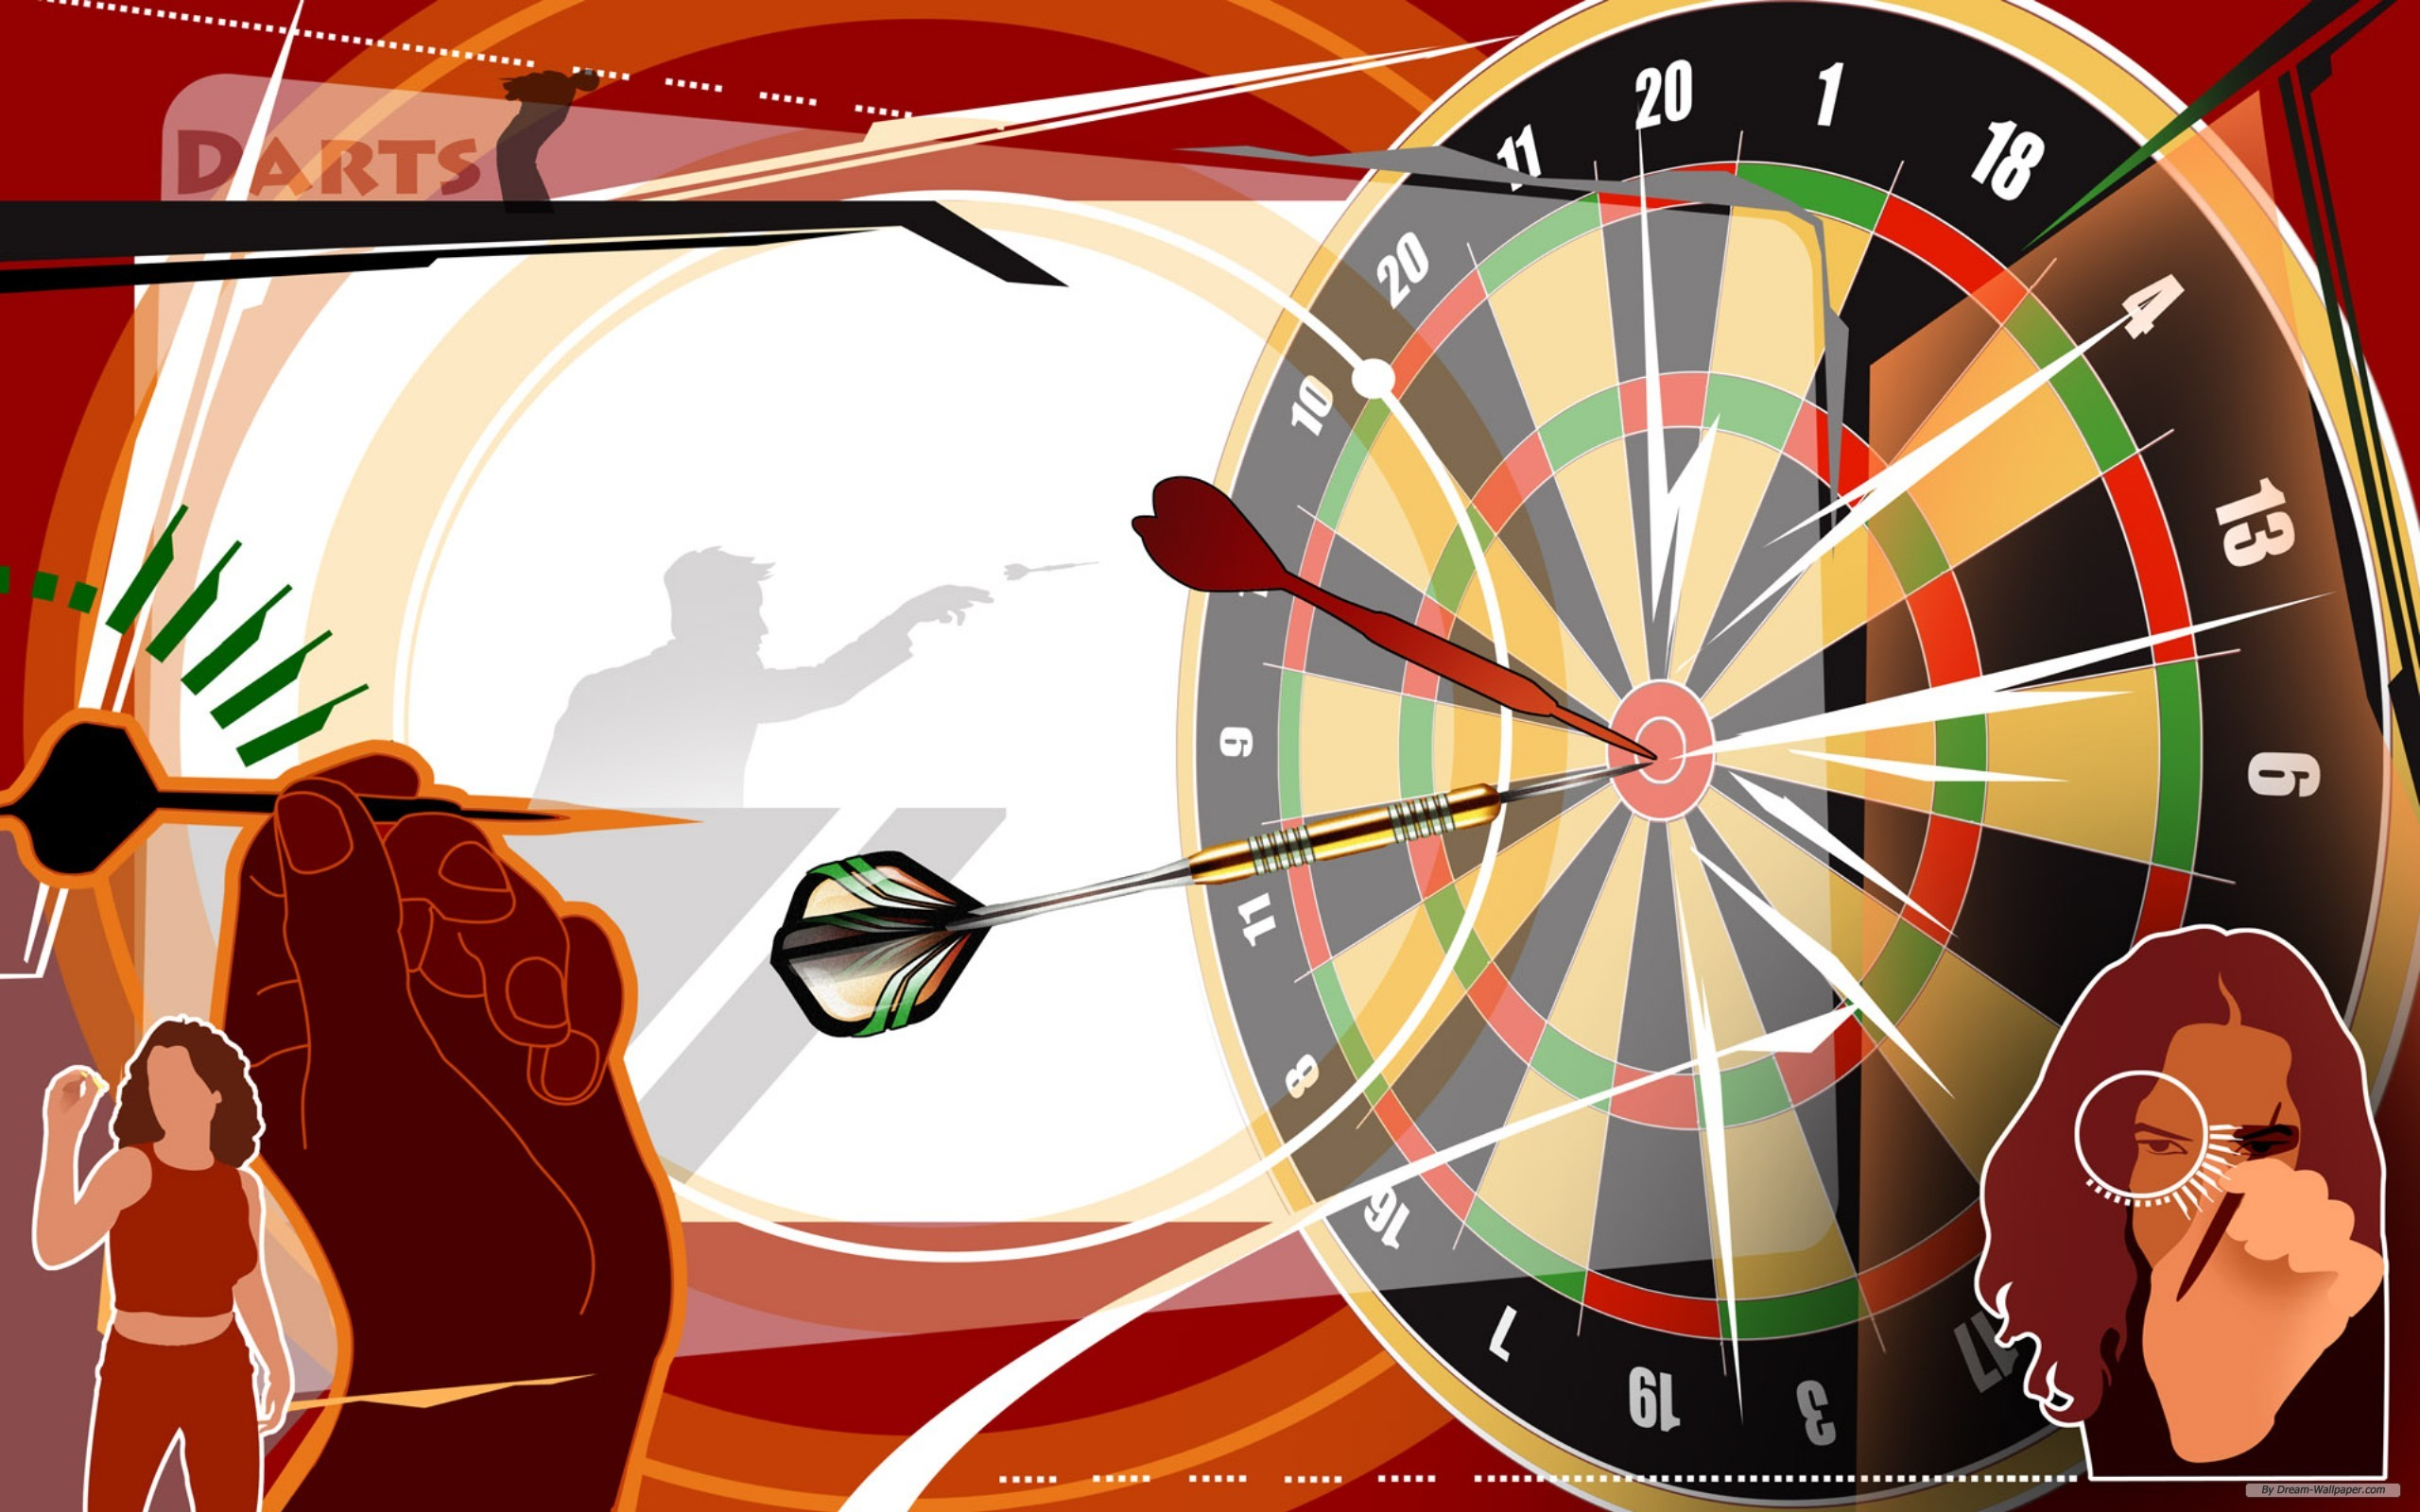 Sport Wallpapers Hd Game Images Players Desktop Images: Darts Full HD Wallpaper And Background Image